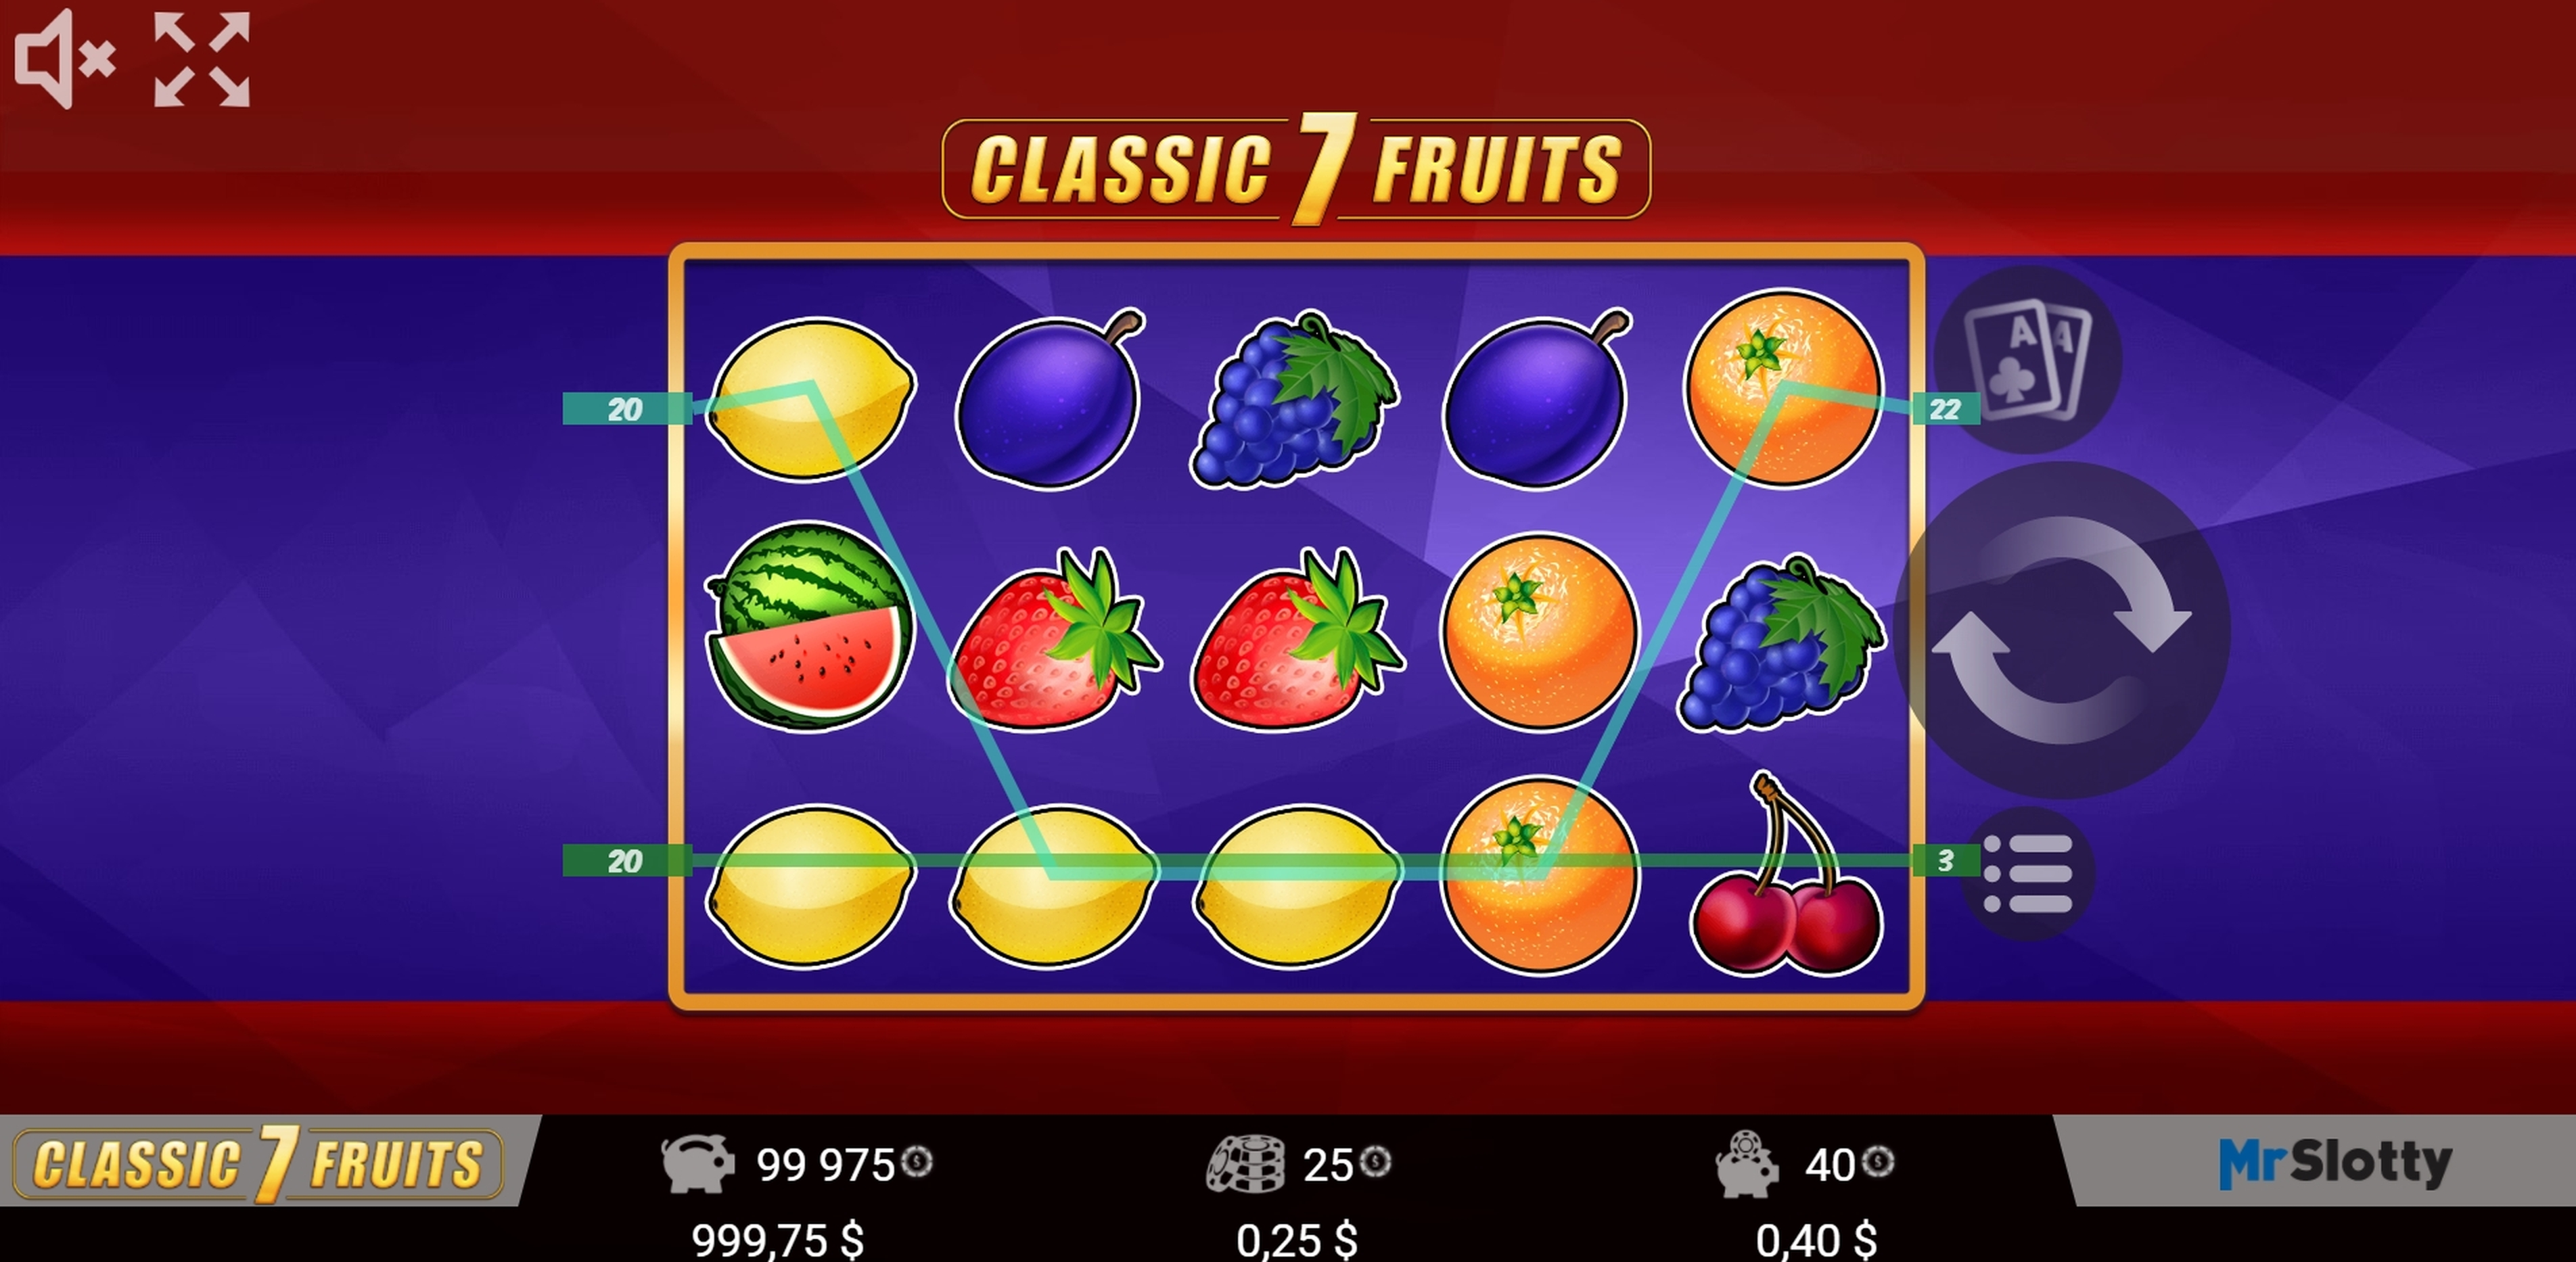 Win Money in Classic 7 Fruits Free Slot Game by Mr Slotty